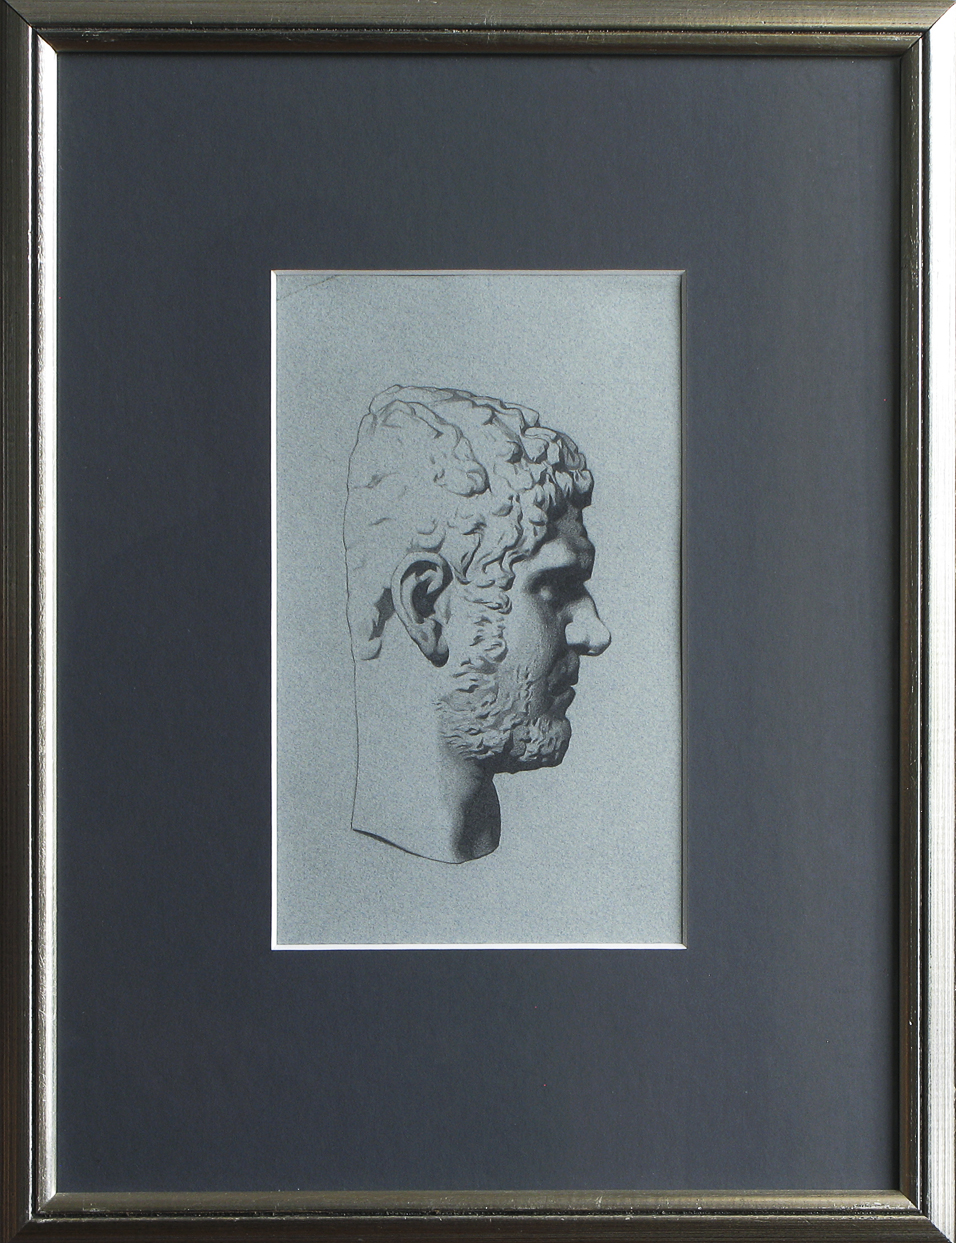 Caracalla-bargue, 2002, visible surface 14 x 23, pencil on paper (medium)